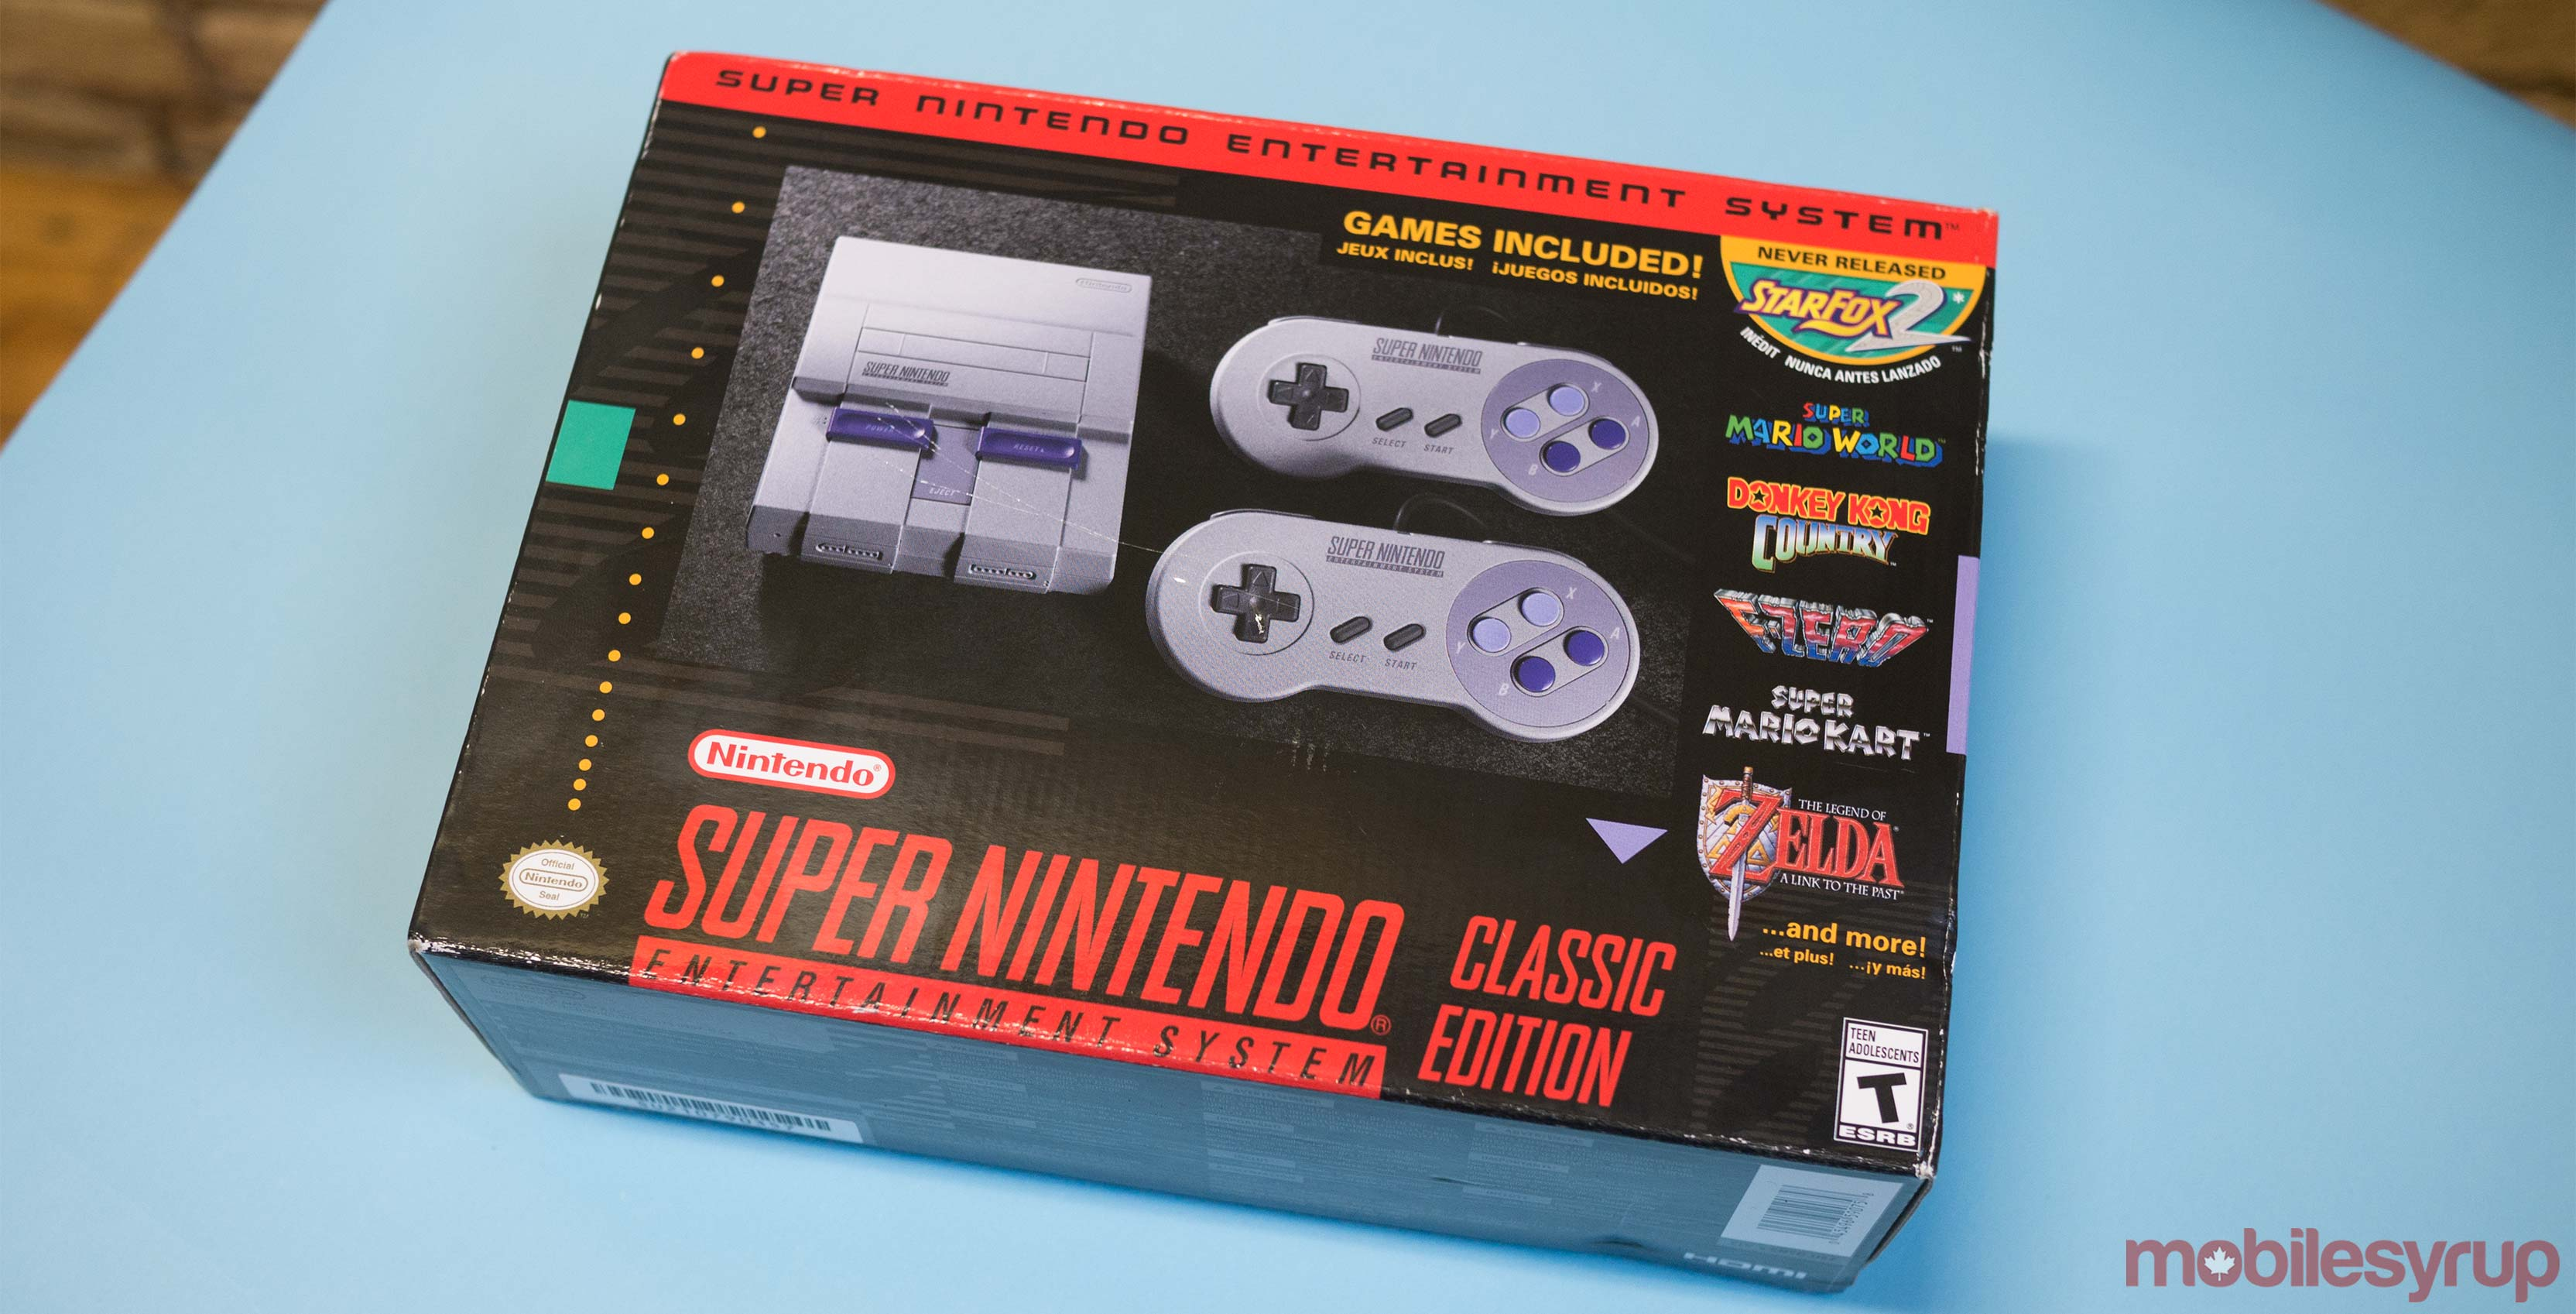 SNES Classic in box on table